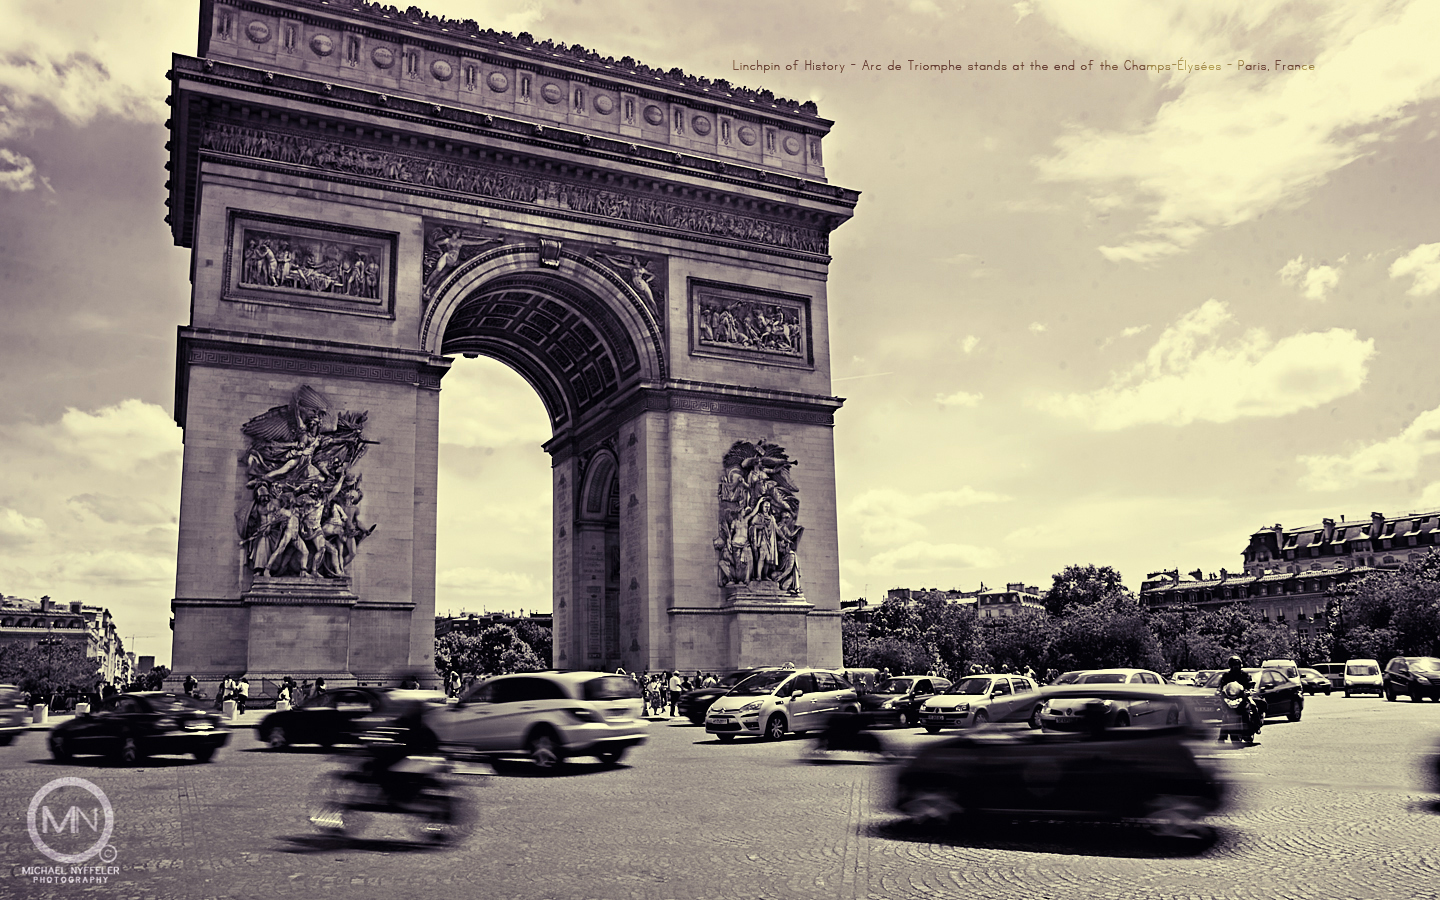 Linchpin+of+History+ +Arc+de+Triomphe+ +Paris%2C+France ⇥Downloads